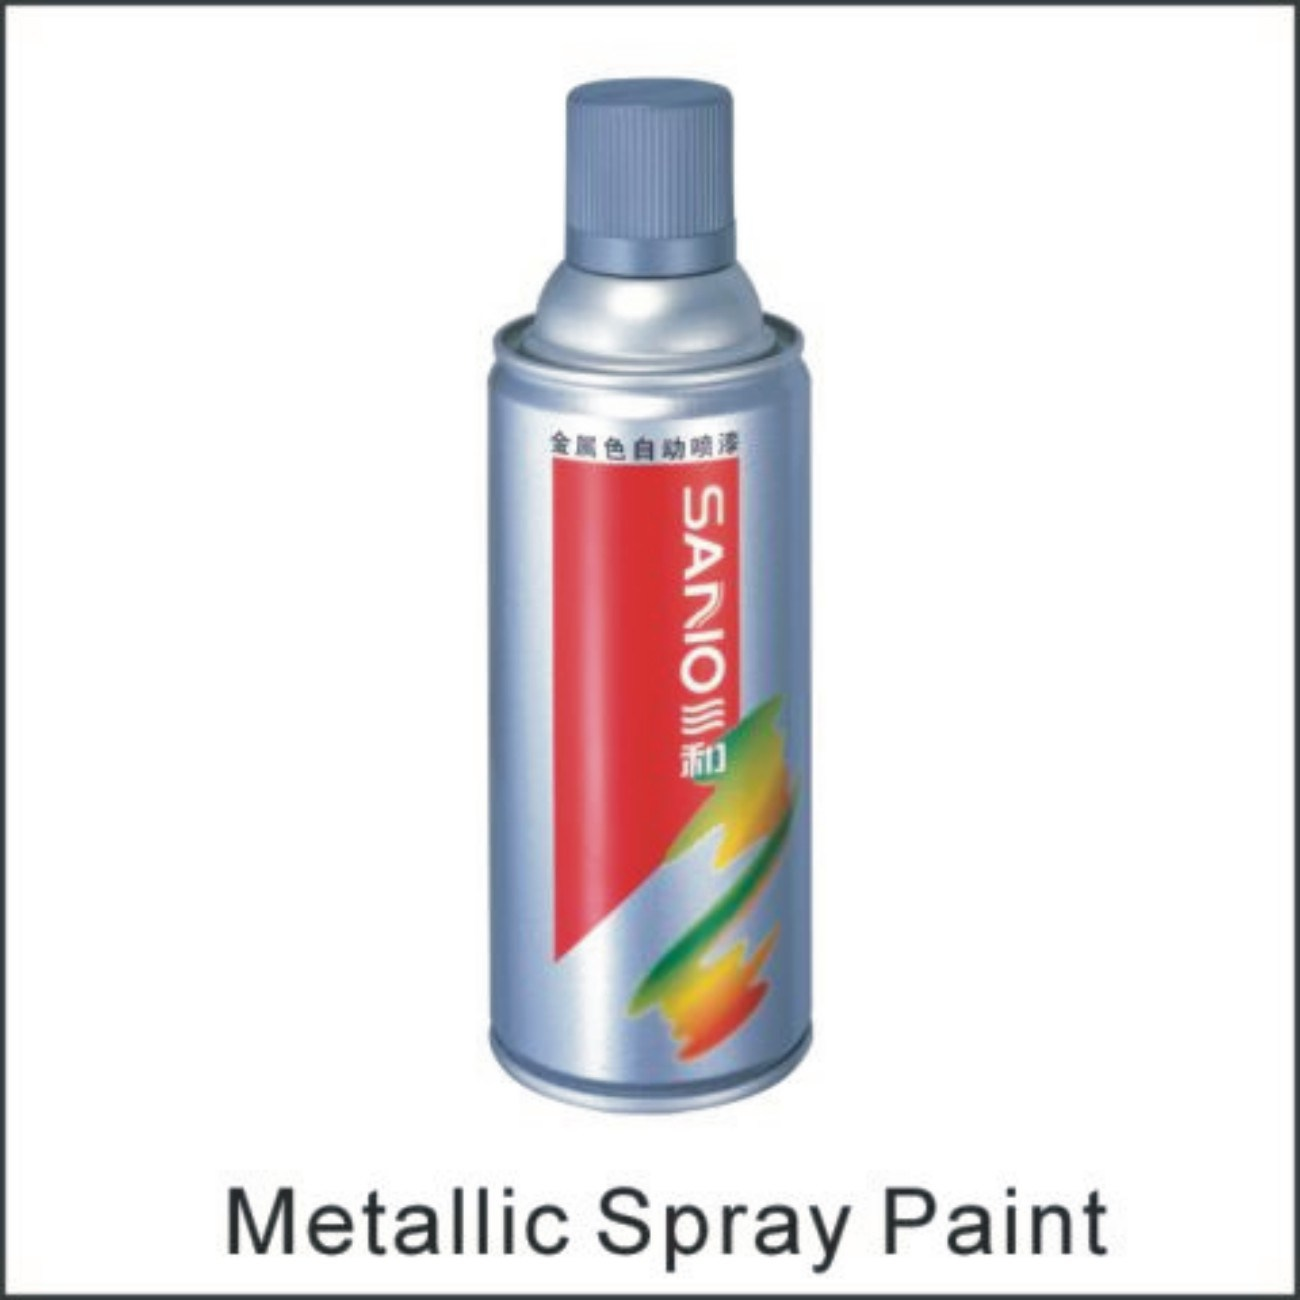 How To Seal Spray Paint Spray Paint Art